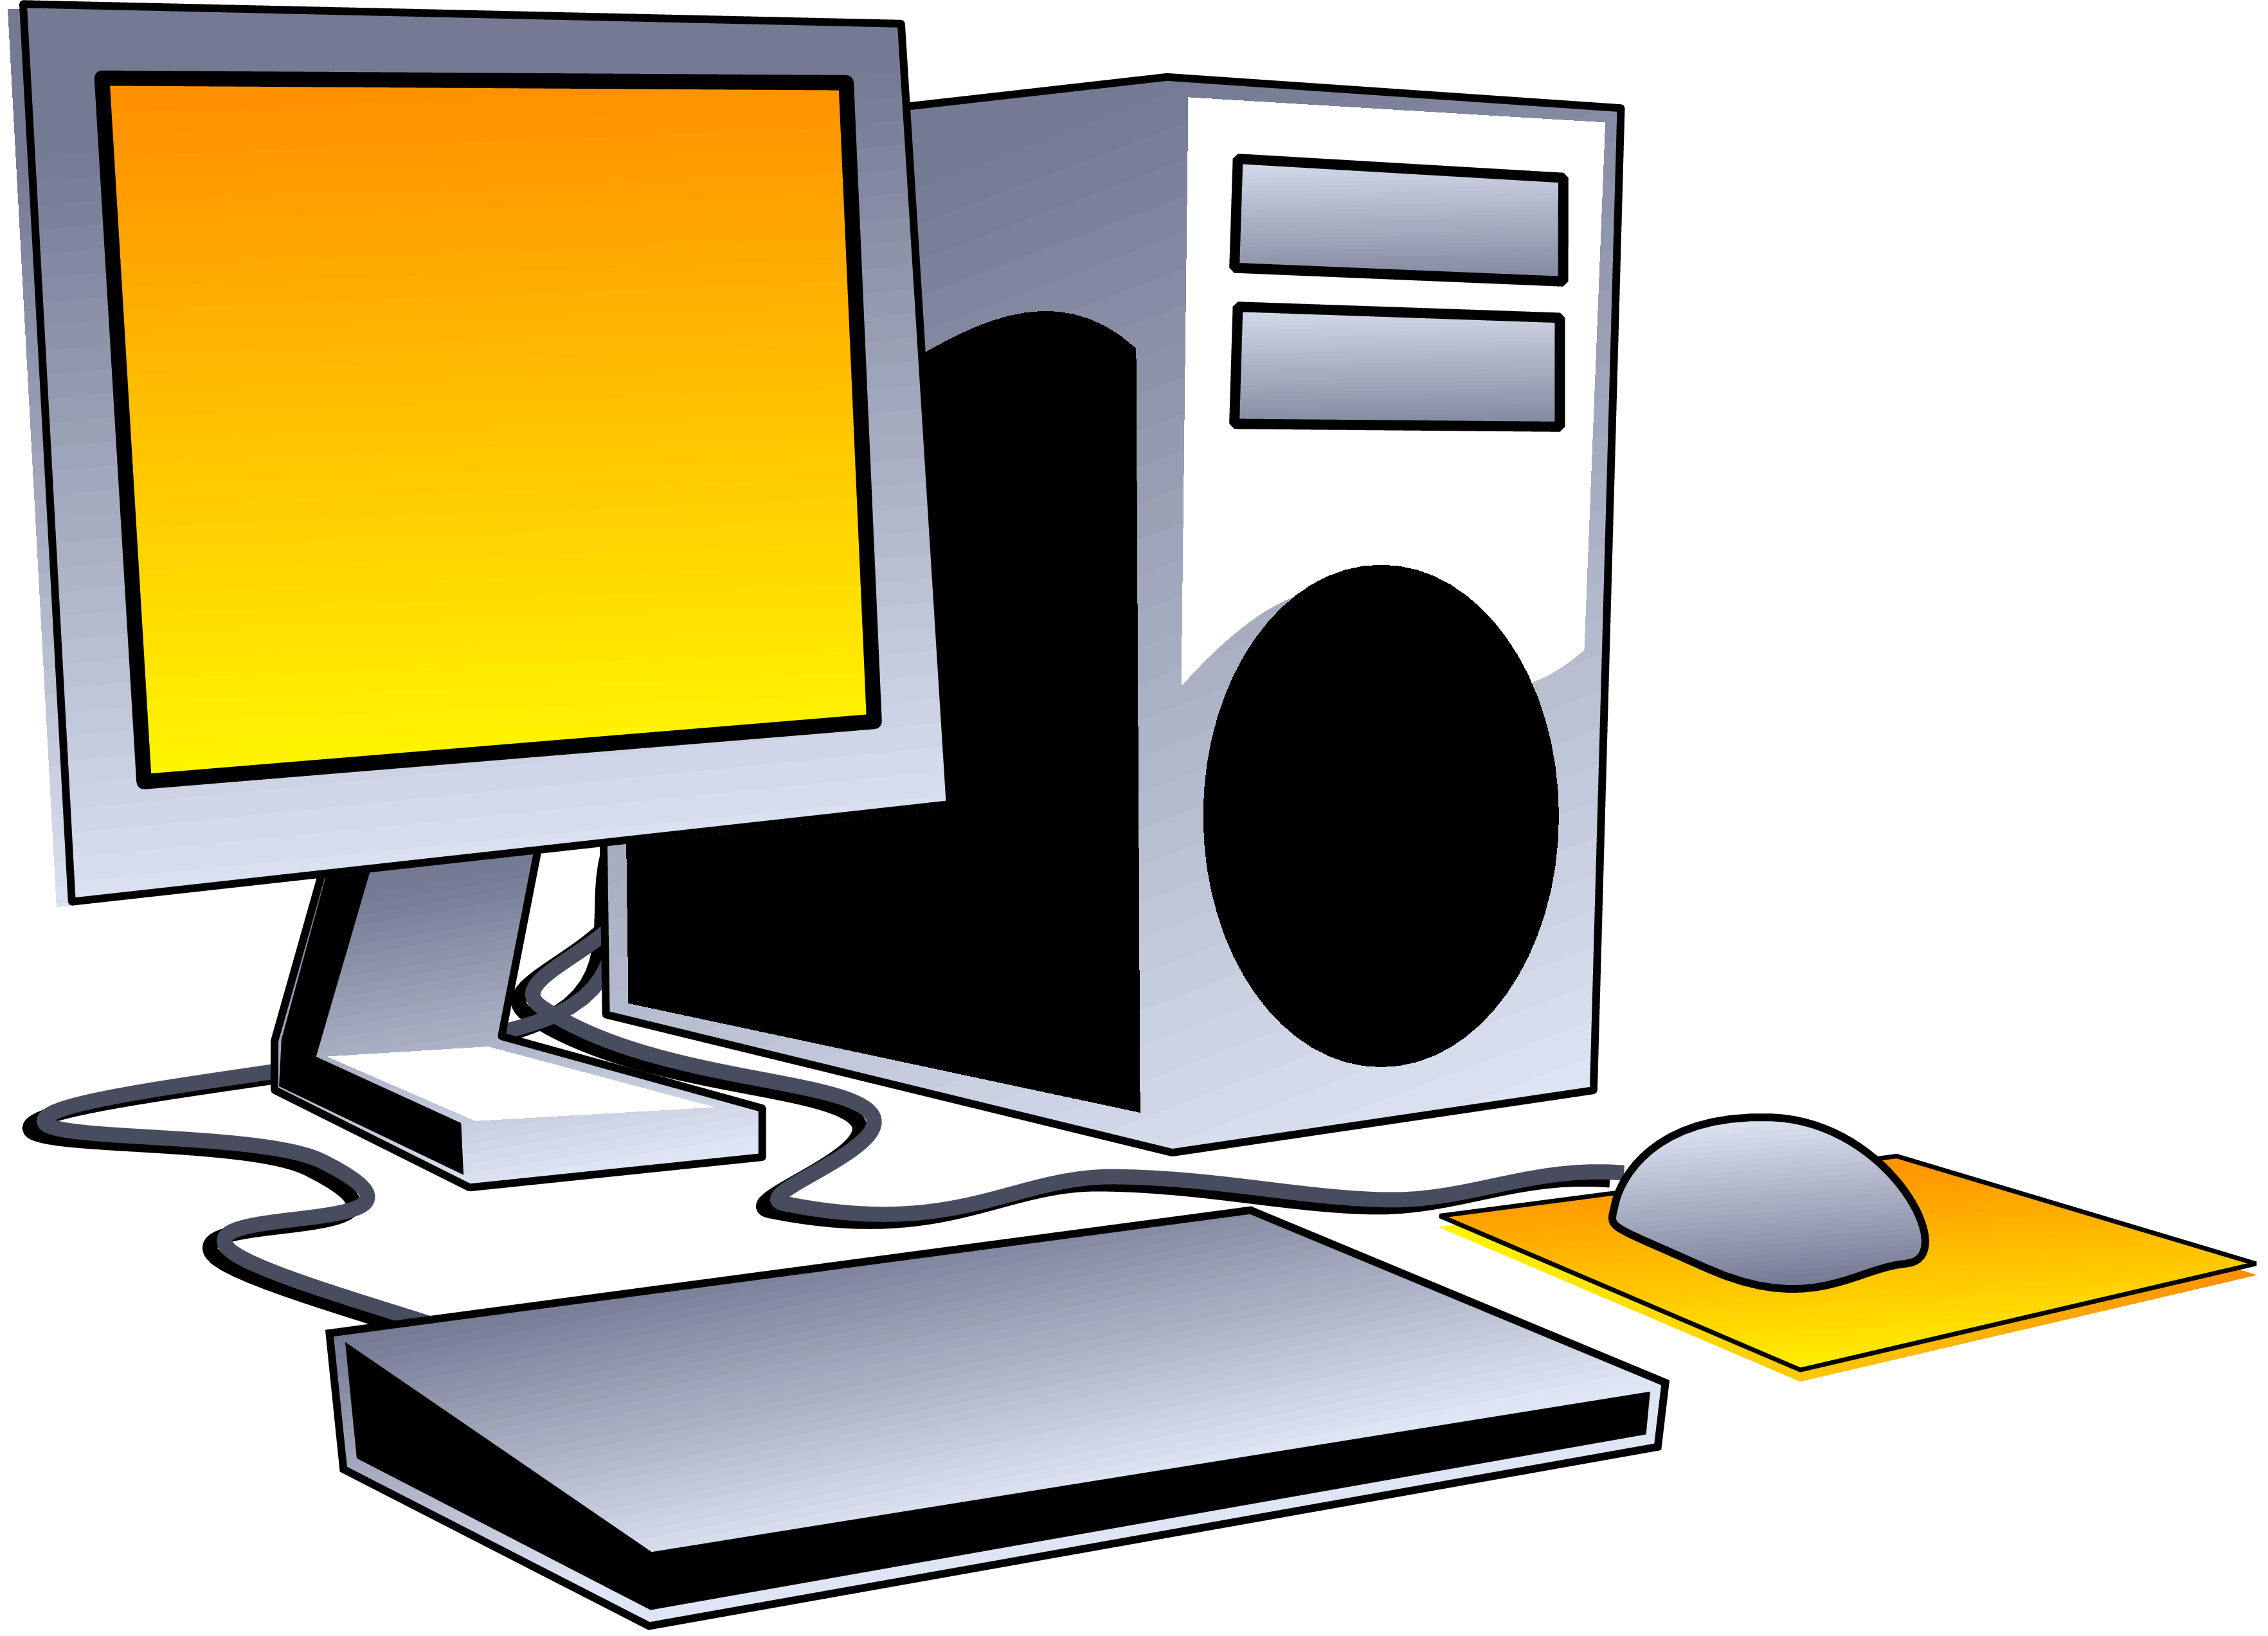 Desktop Computers Clipart - Clipart Of A Computer